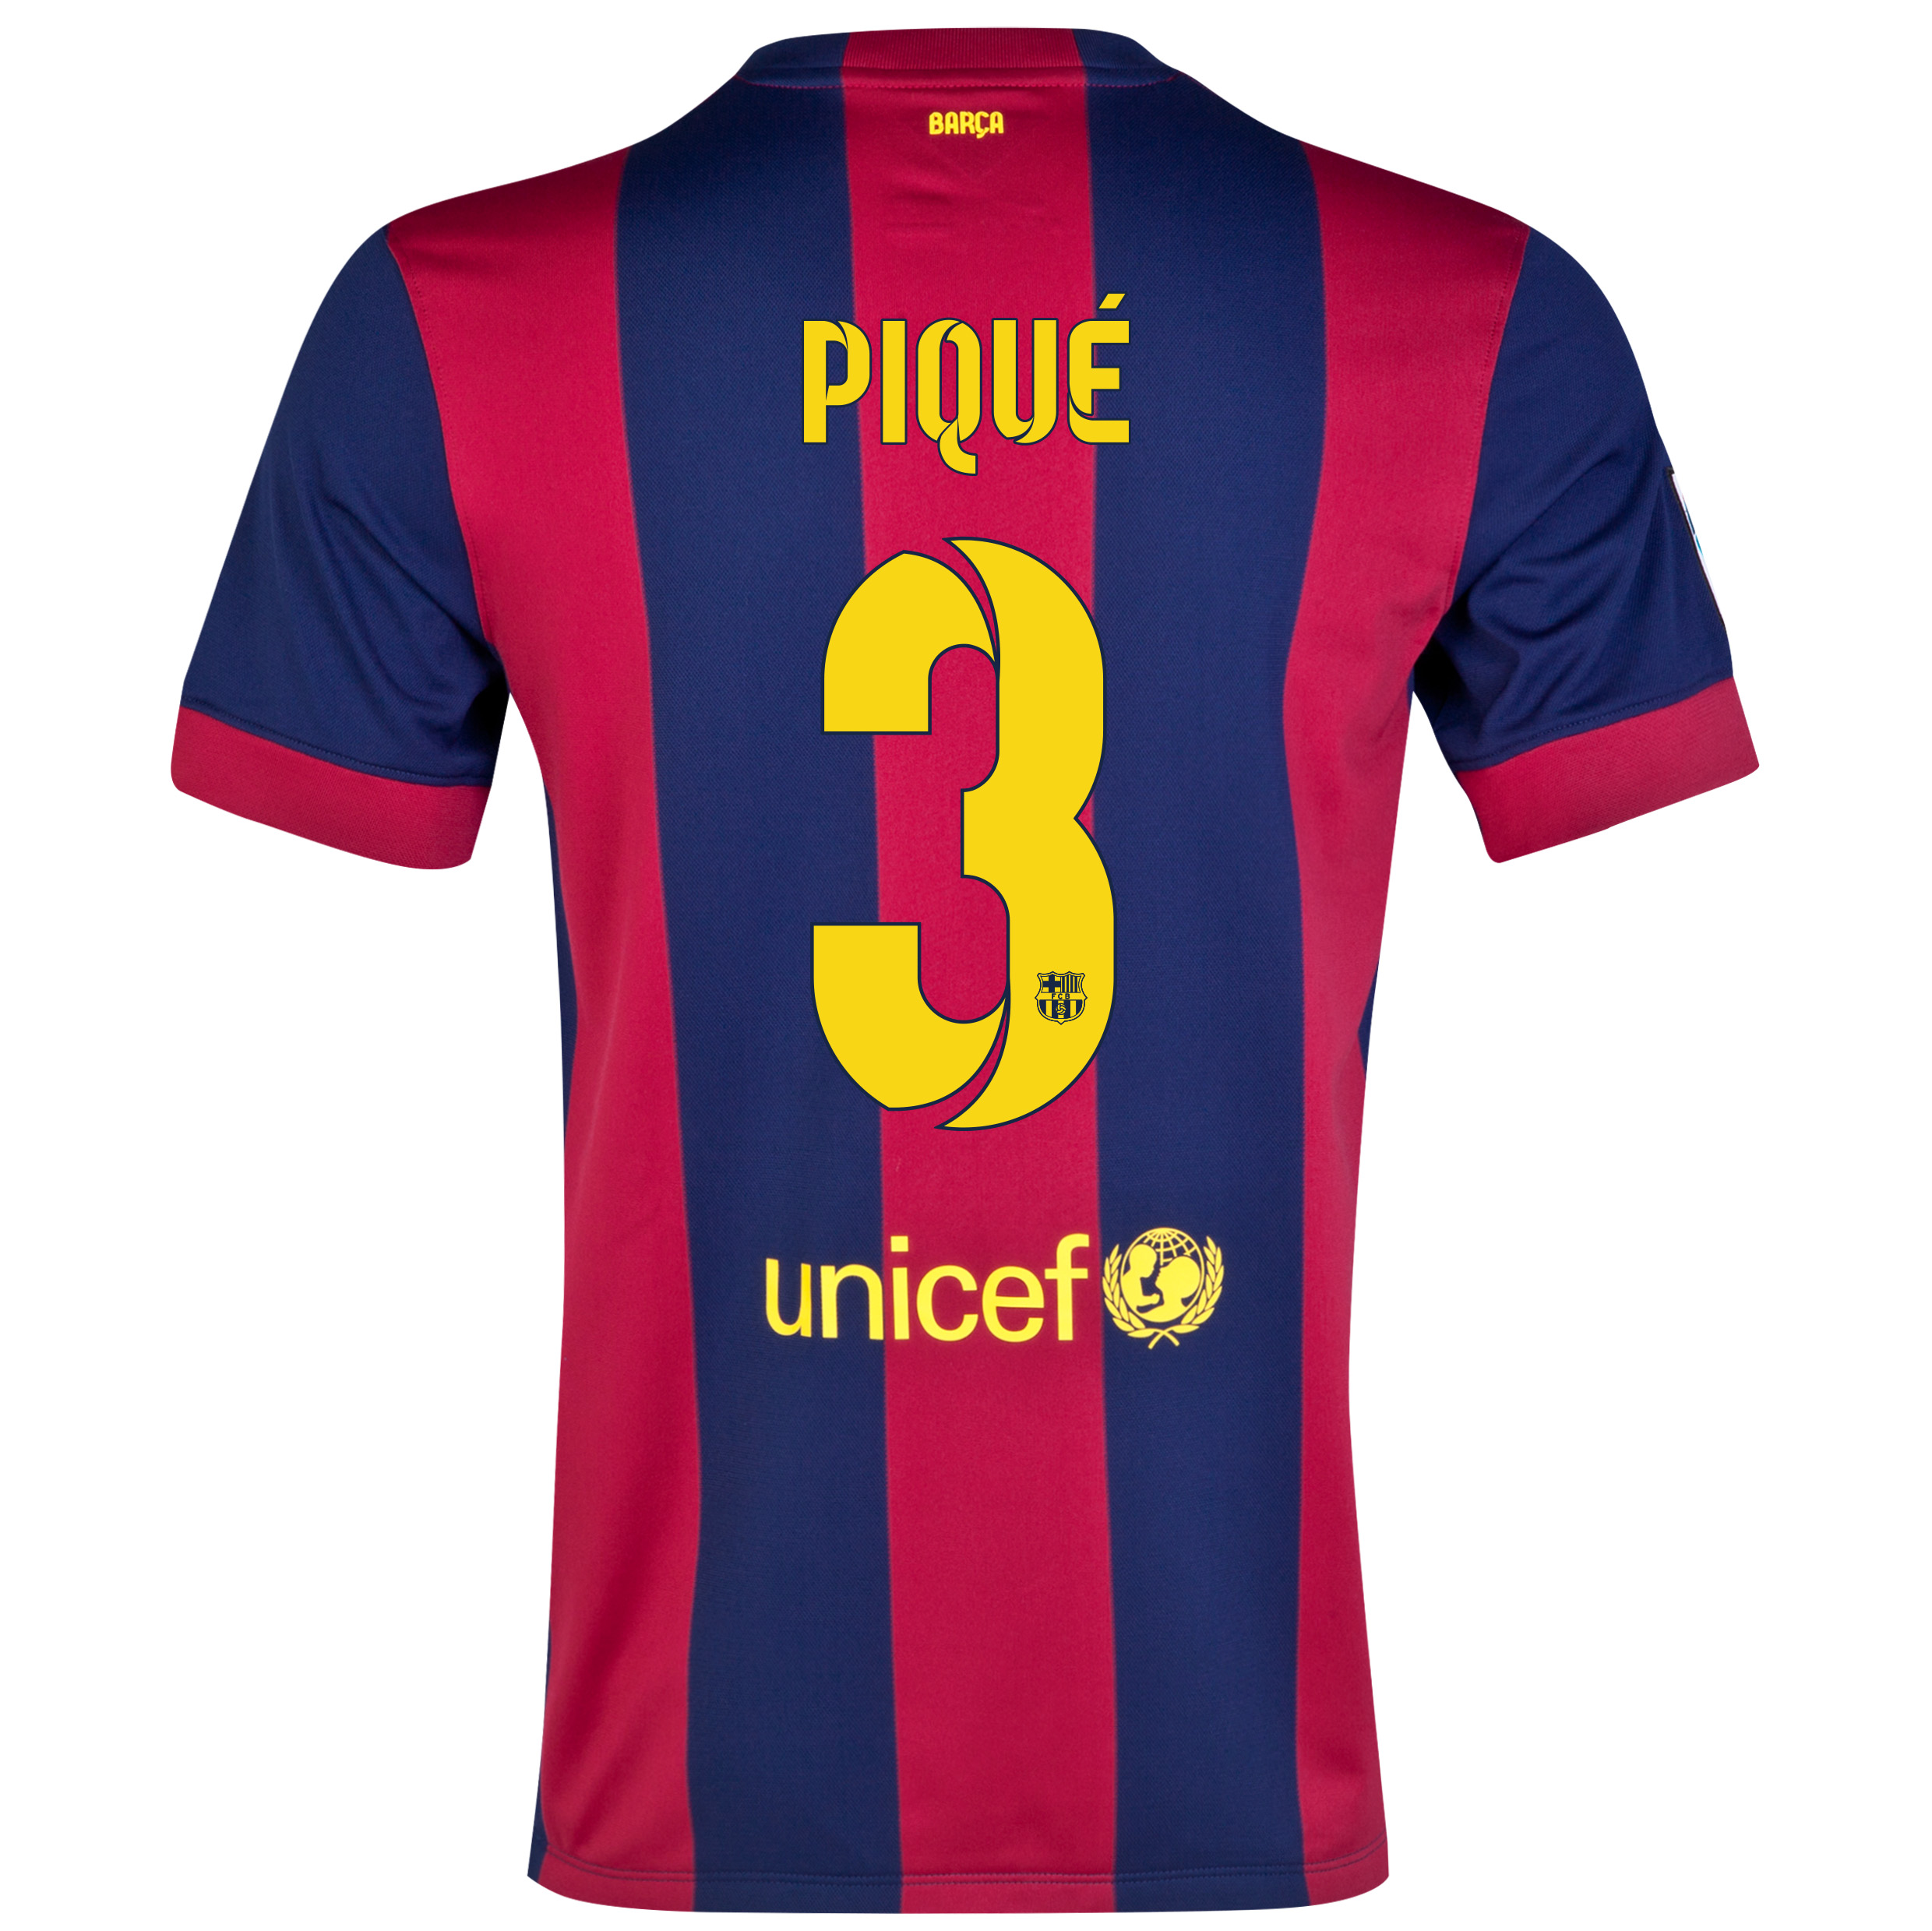 Barcelona Home Shirt 2014/15 - Womens Blue with Pique 3 printing